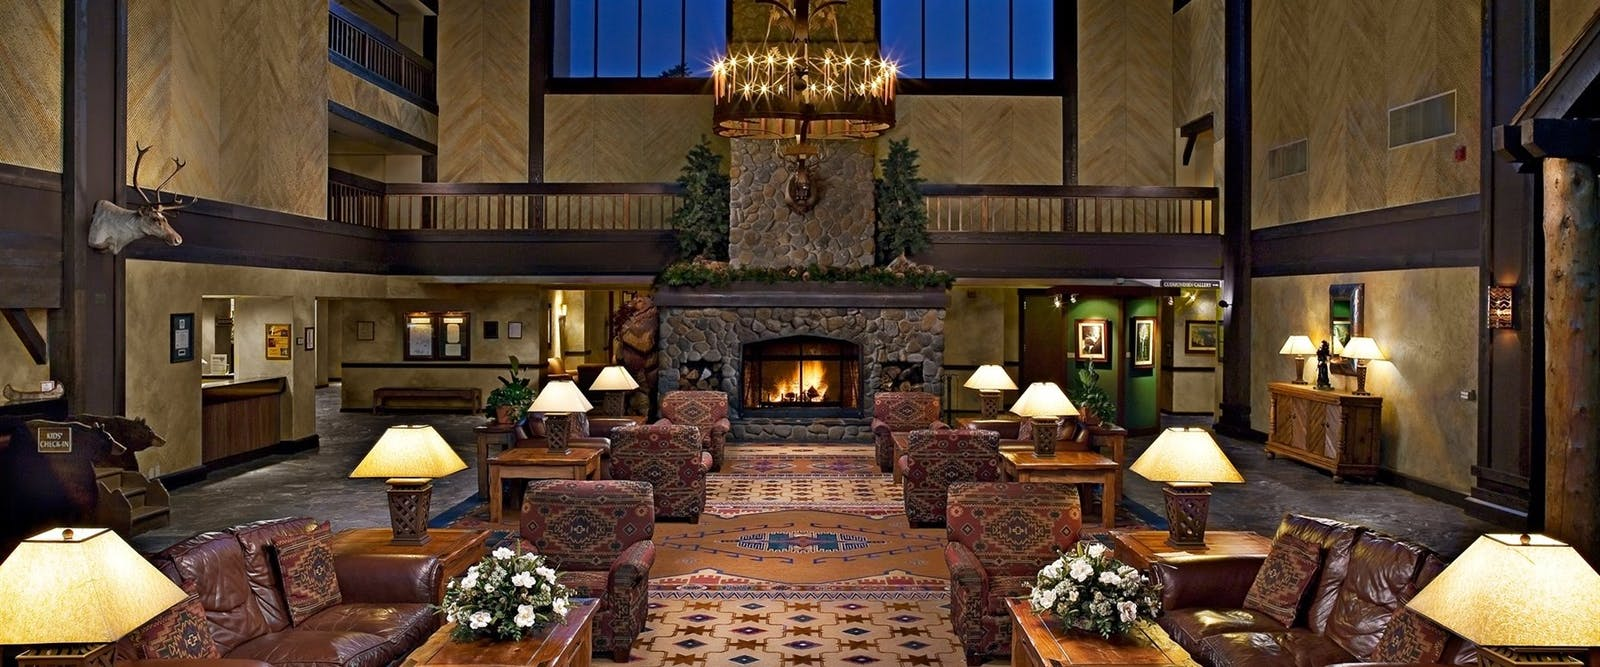 Grand Lobby at Tenaya Lodge, California